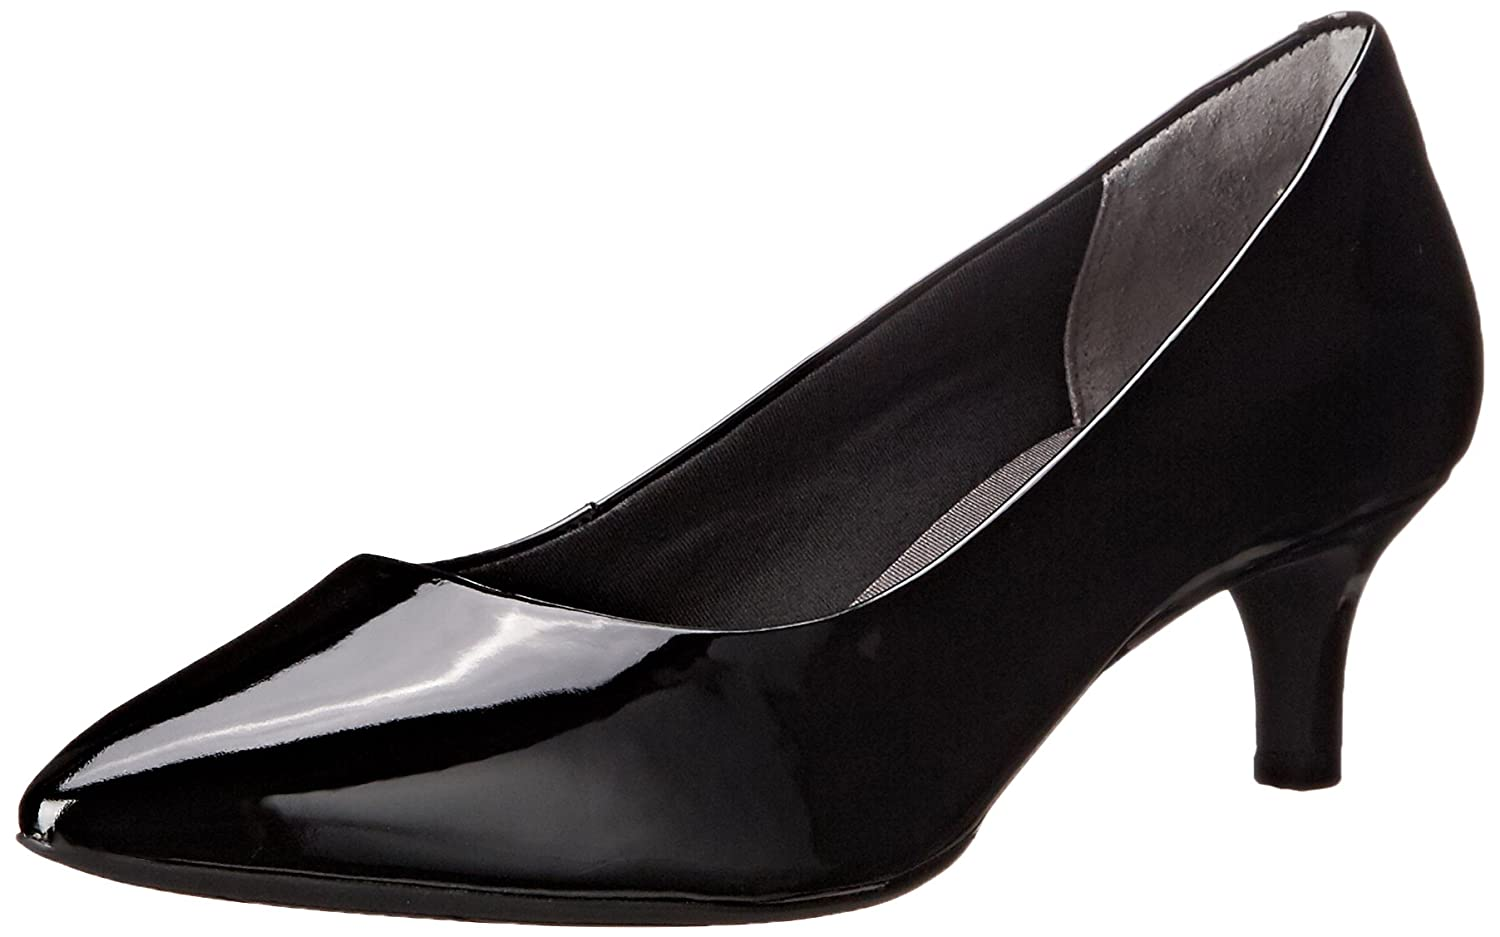 Rockport Women's Total Motion Kalila Dress Pump B013QSCJDI 5 W US|Black Patent